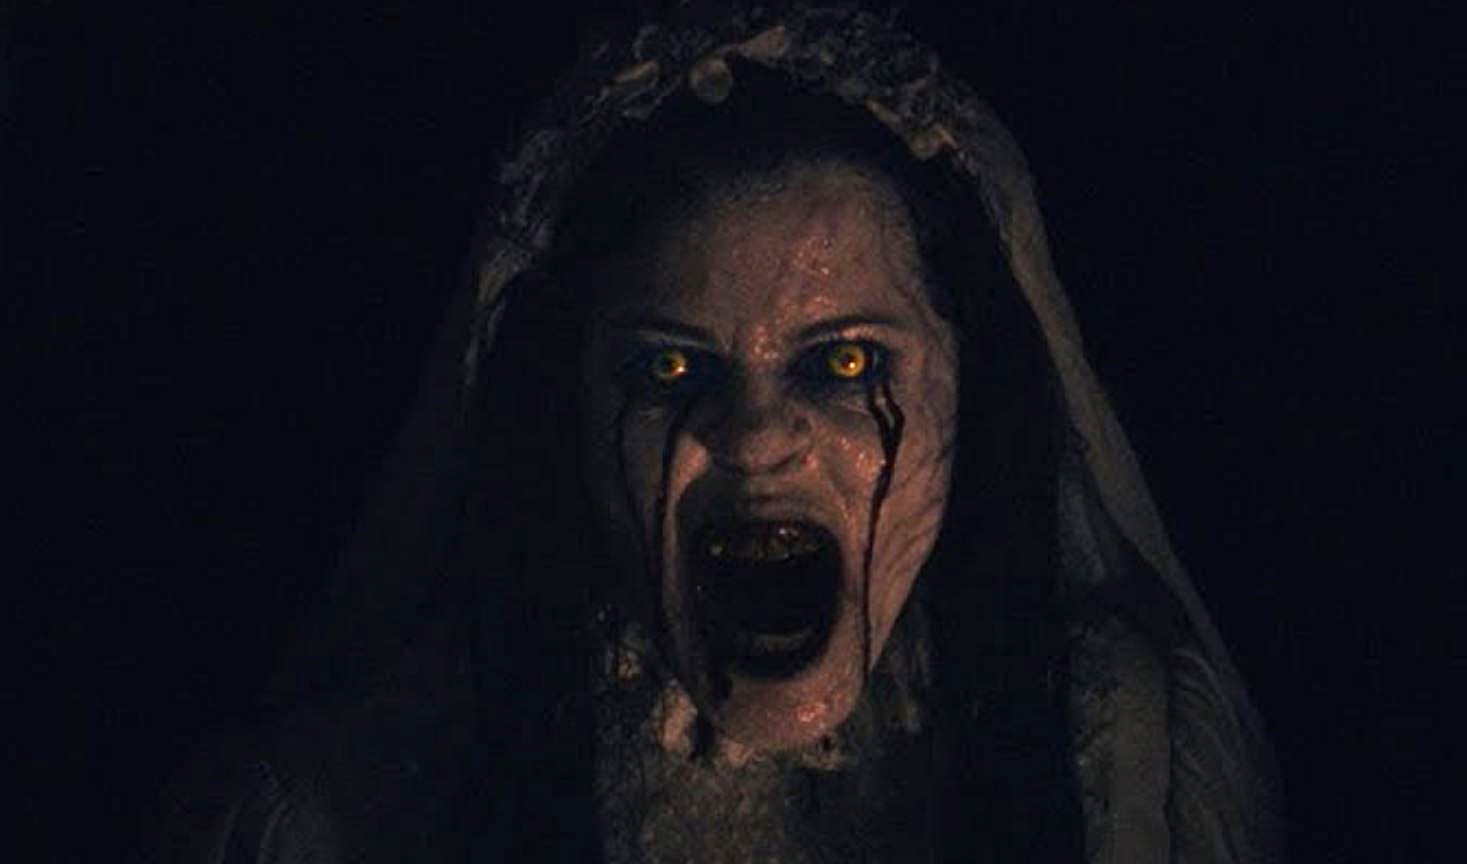 Marisol Ramirez in The Curse of La Llorona (2019)